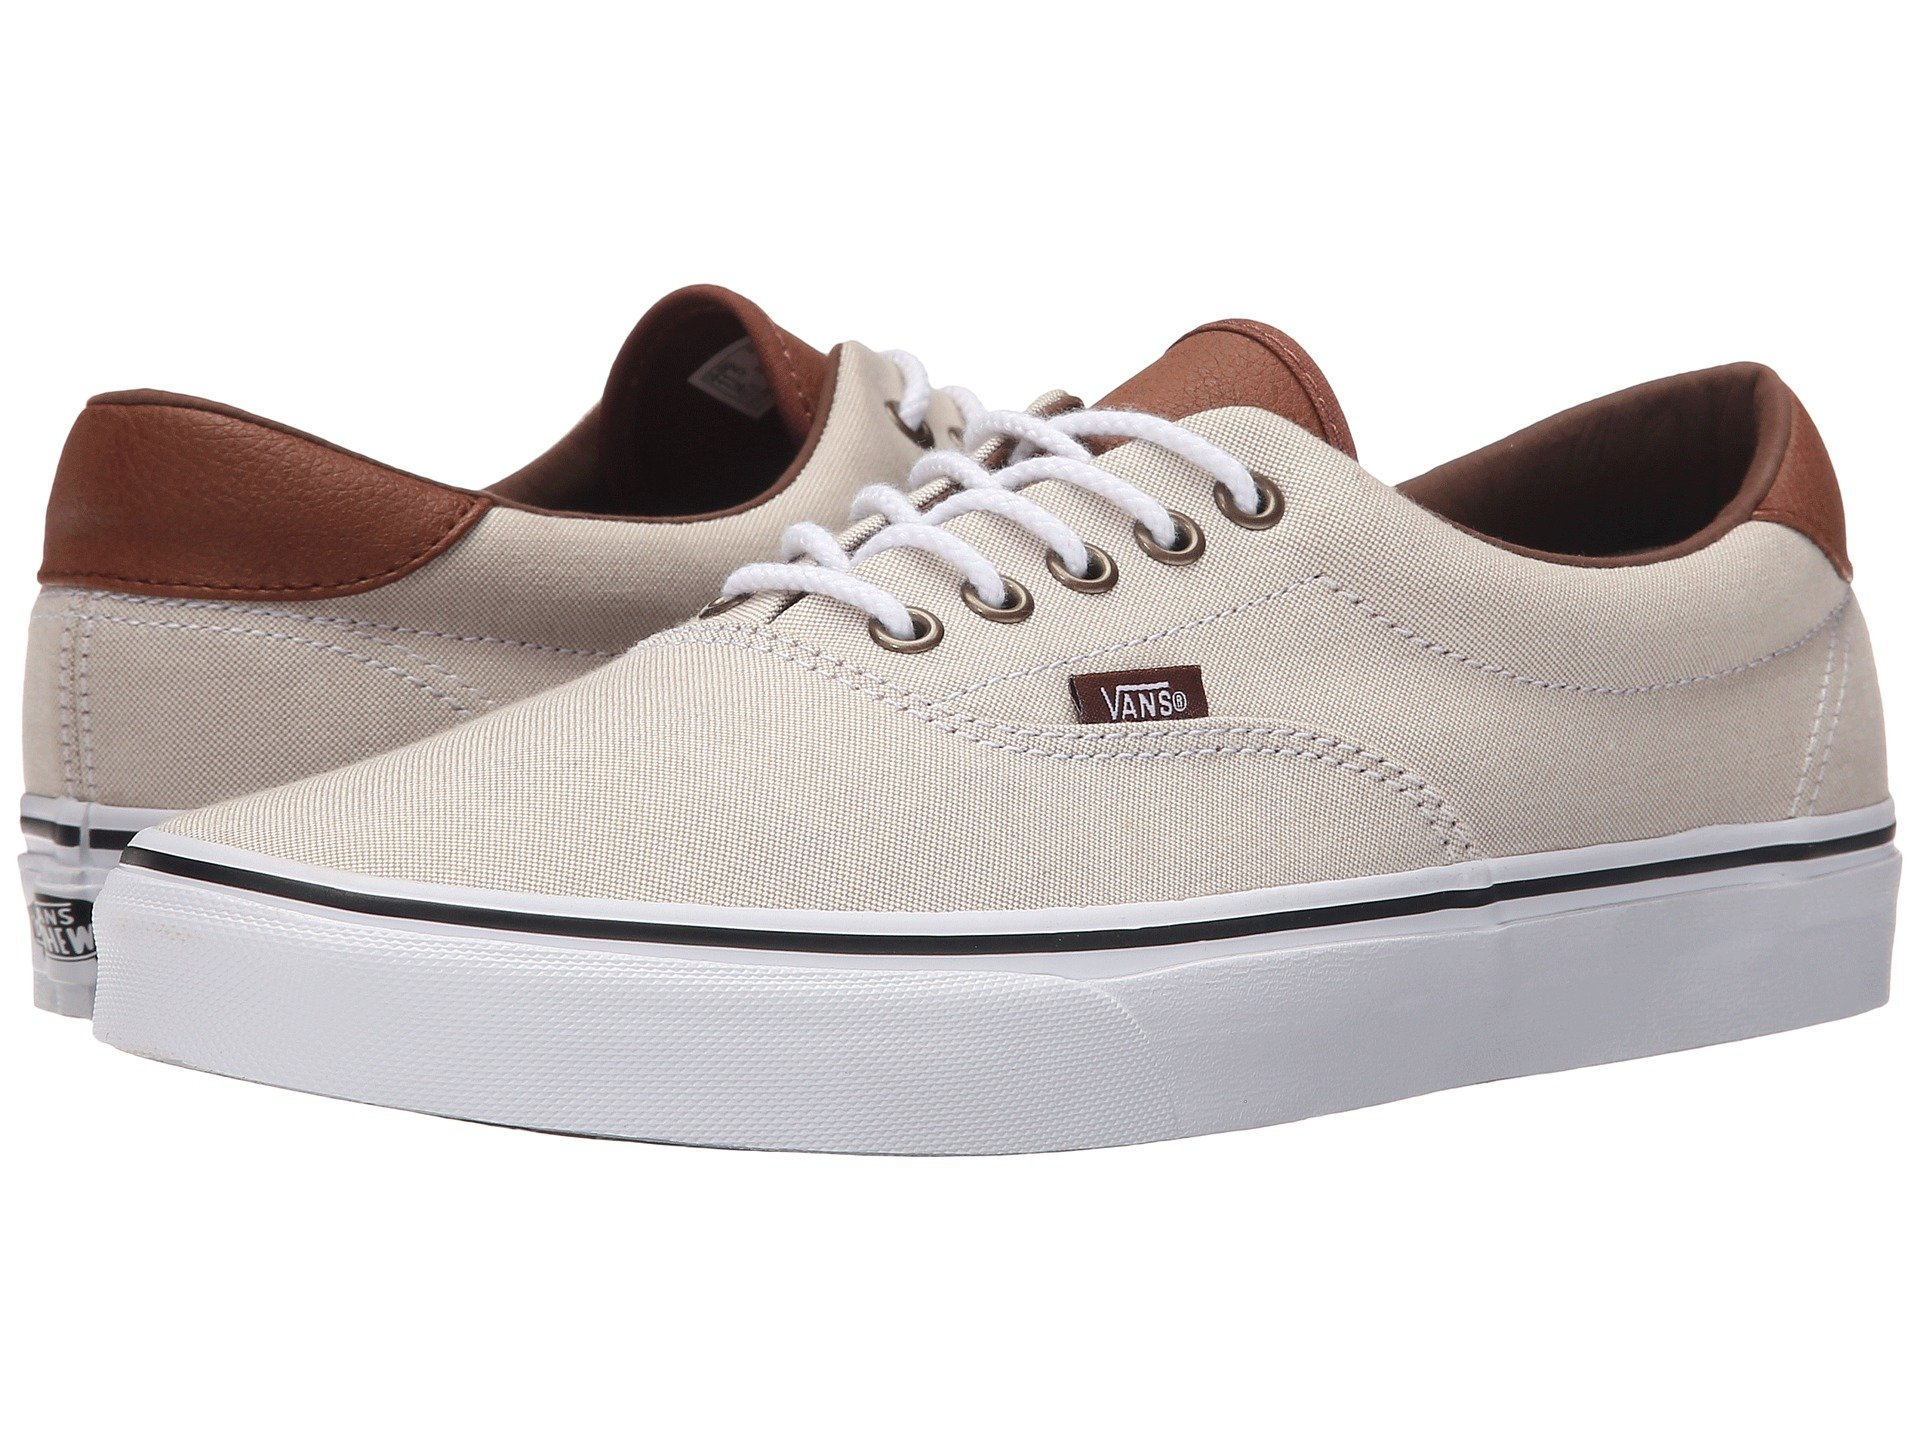 Lyst - Vans Era 59 in Natural for Men d8fcab89323f